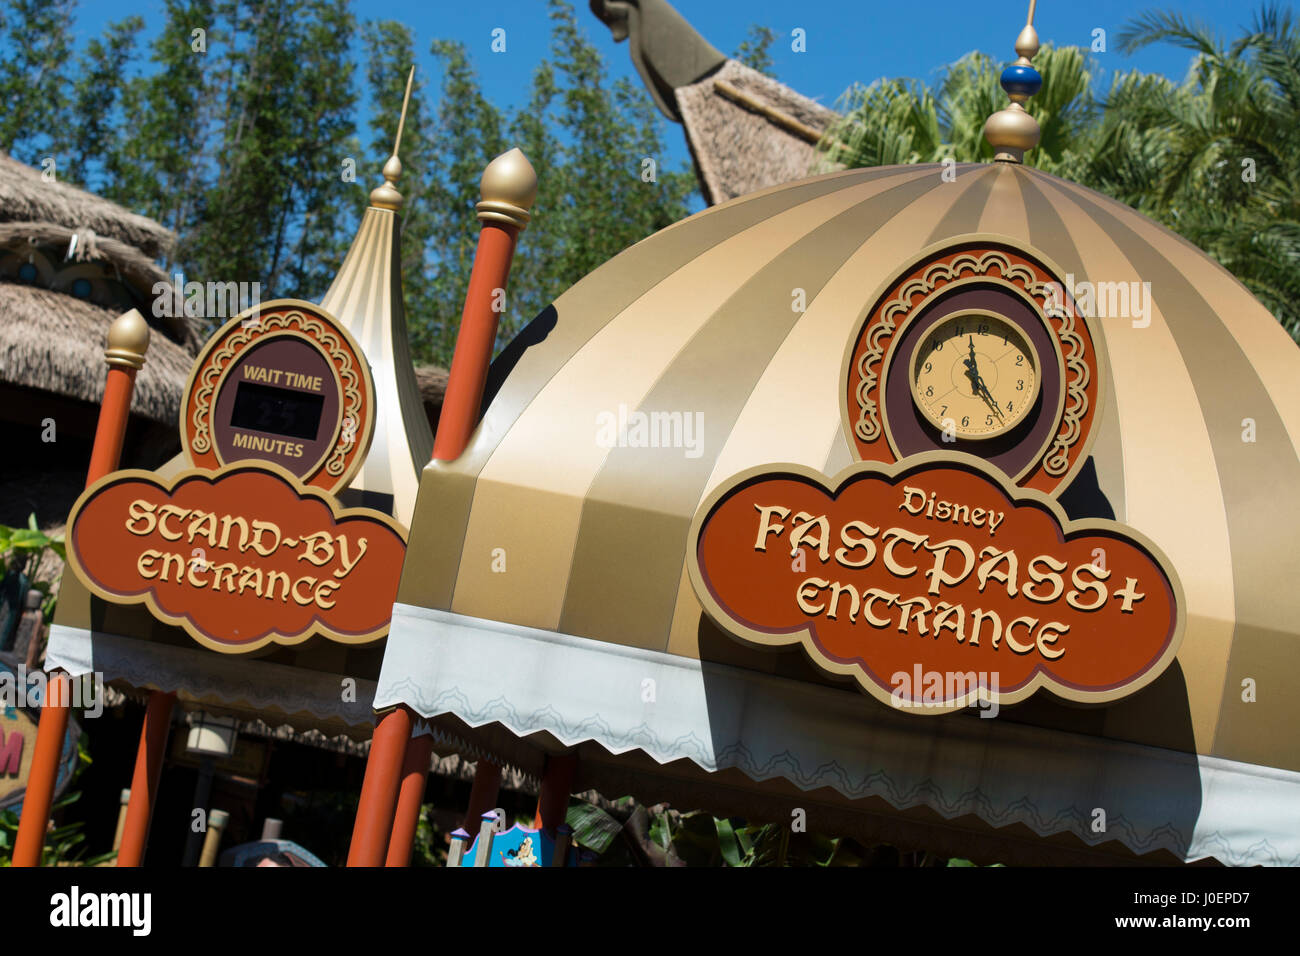 Disney Fast Pass and Stand-by Entrance, Disney World, Orlando Florida - Stock Image